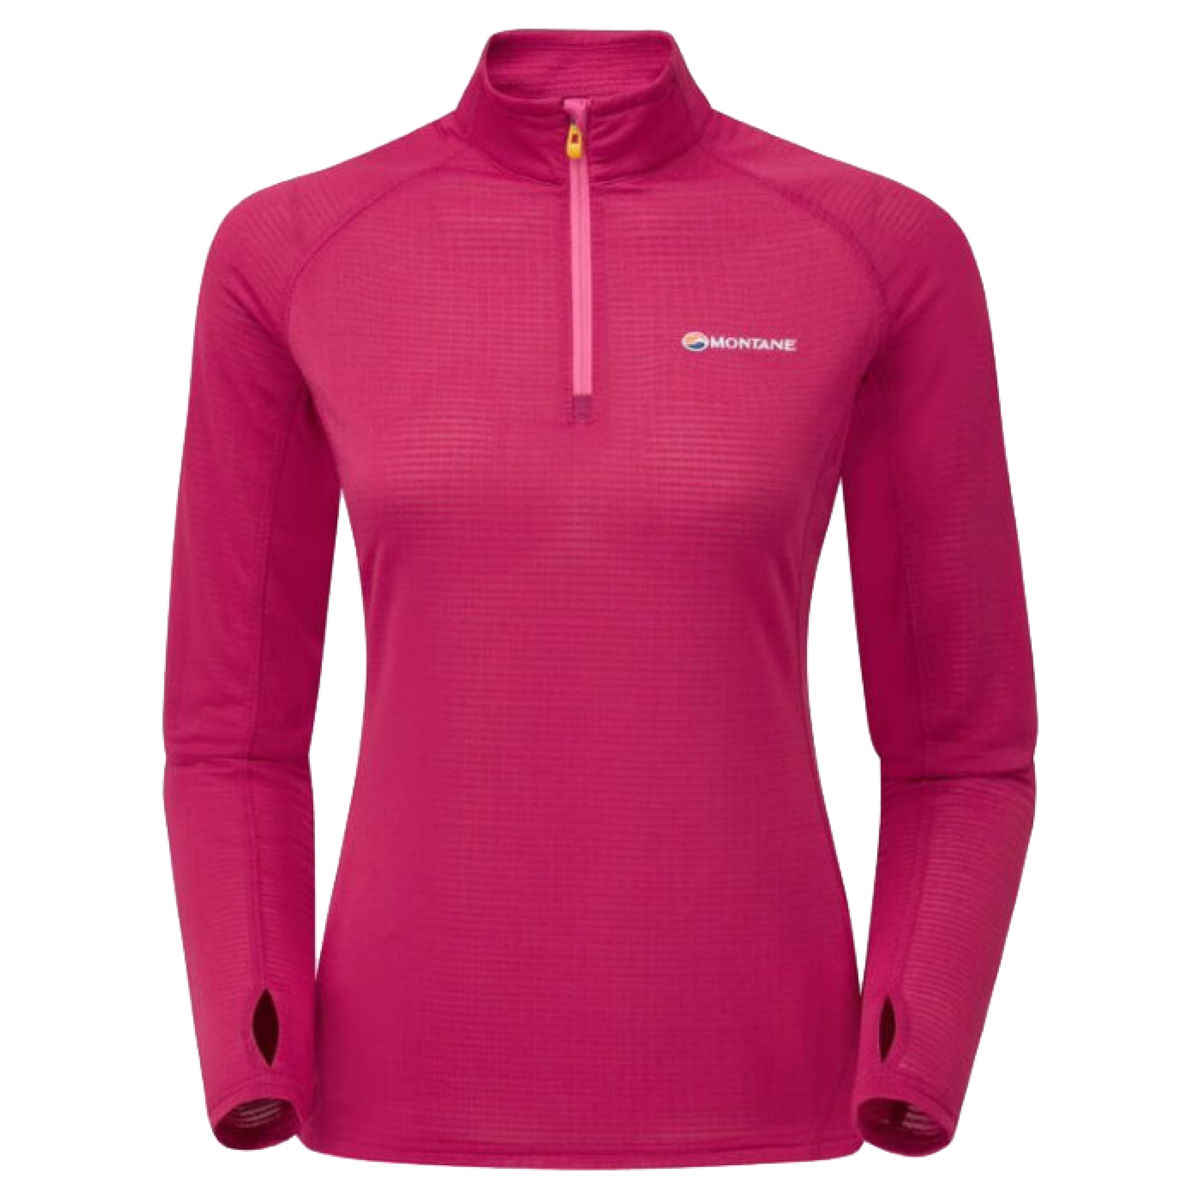 Maillot Femme Montane Allez Micro Pull On (PE17) - 8 UK French Berry